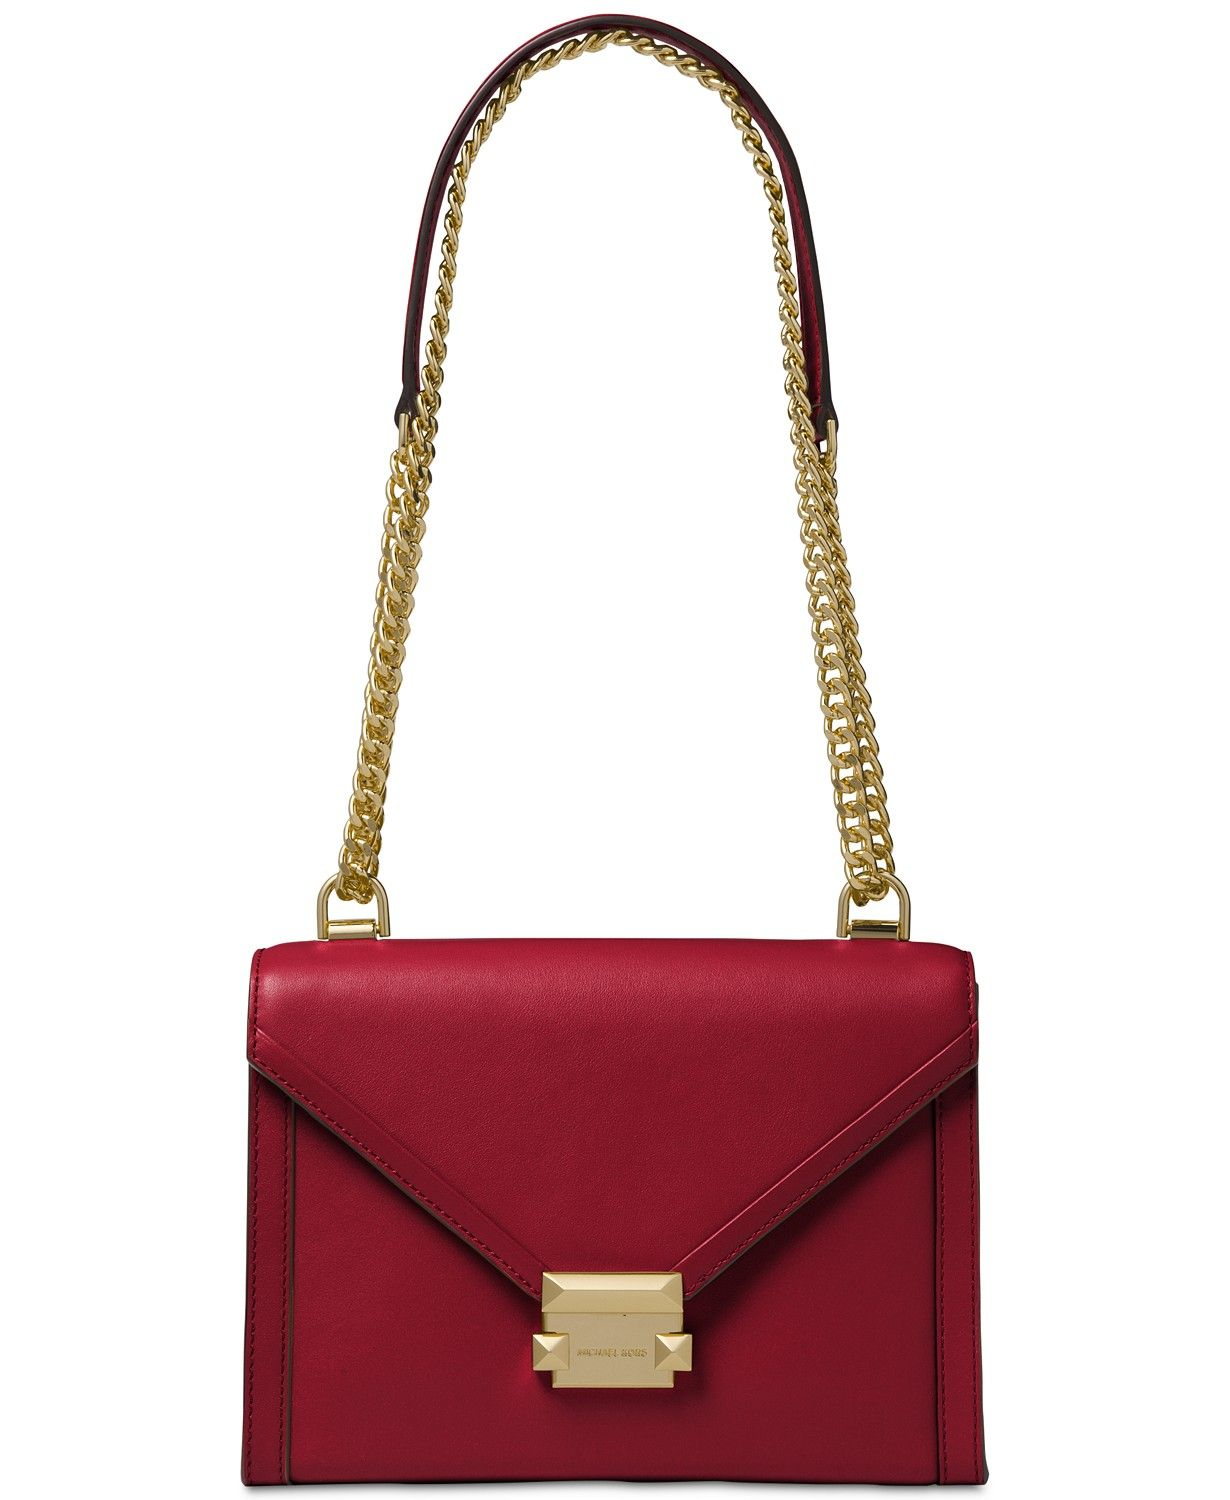 1296bfaa0d67 A polished chain strap and timeless push-lock closure elevates the allure  of the MICHAEL Michael Kors Whitney Shoulder Bag.